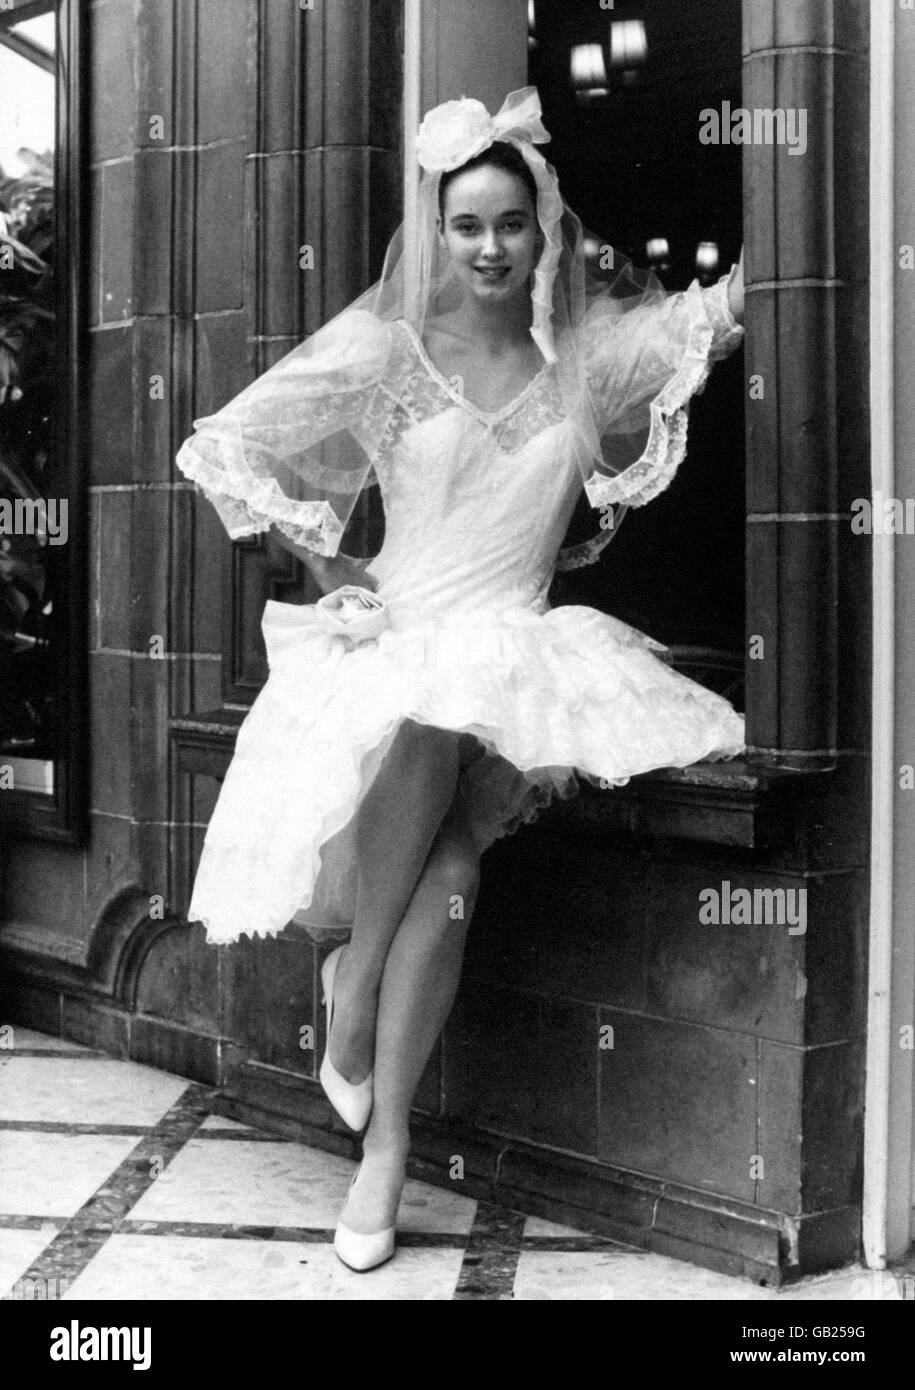 Fashion - Bridal Wear - Harrods Stock Photo: 110071516 - Alamy